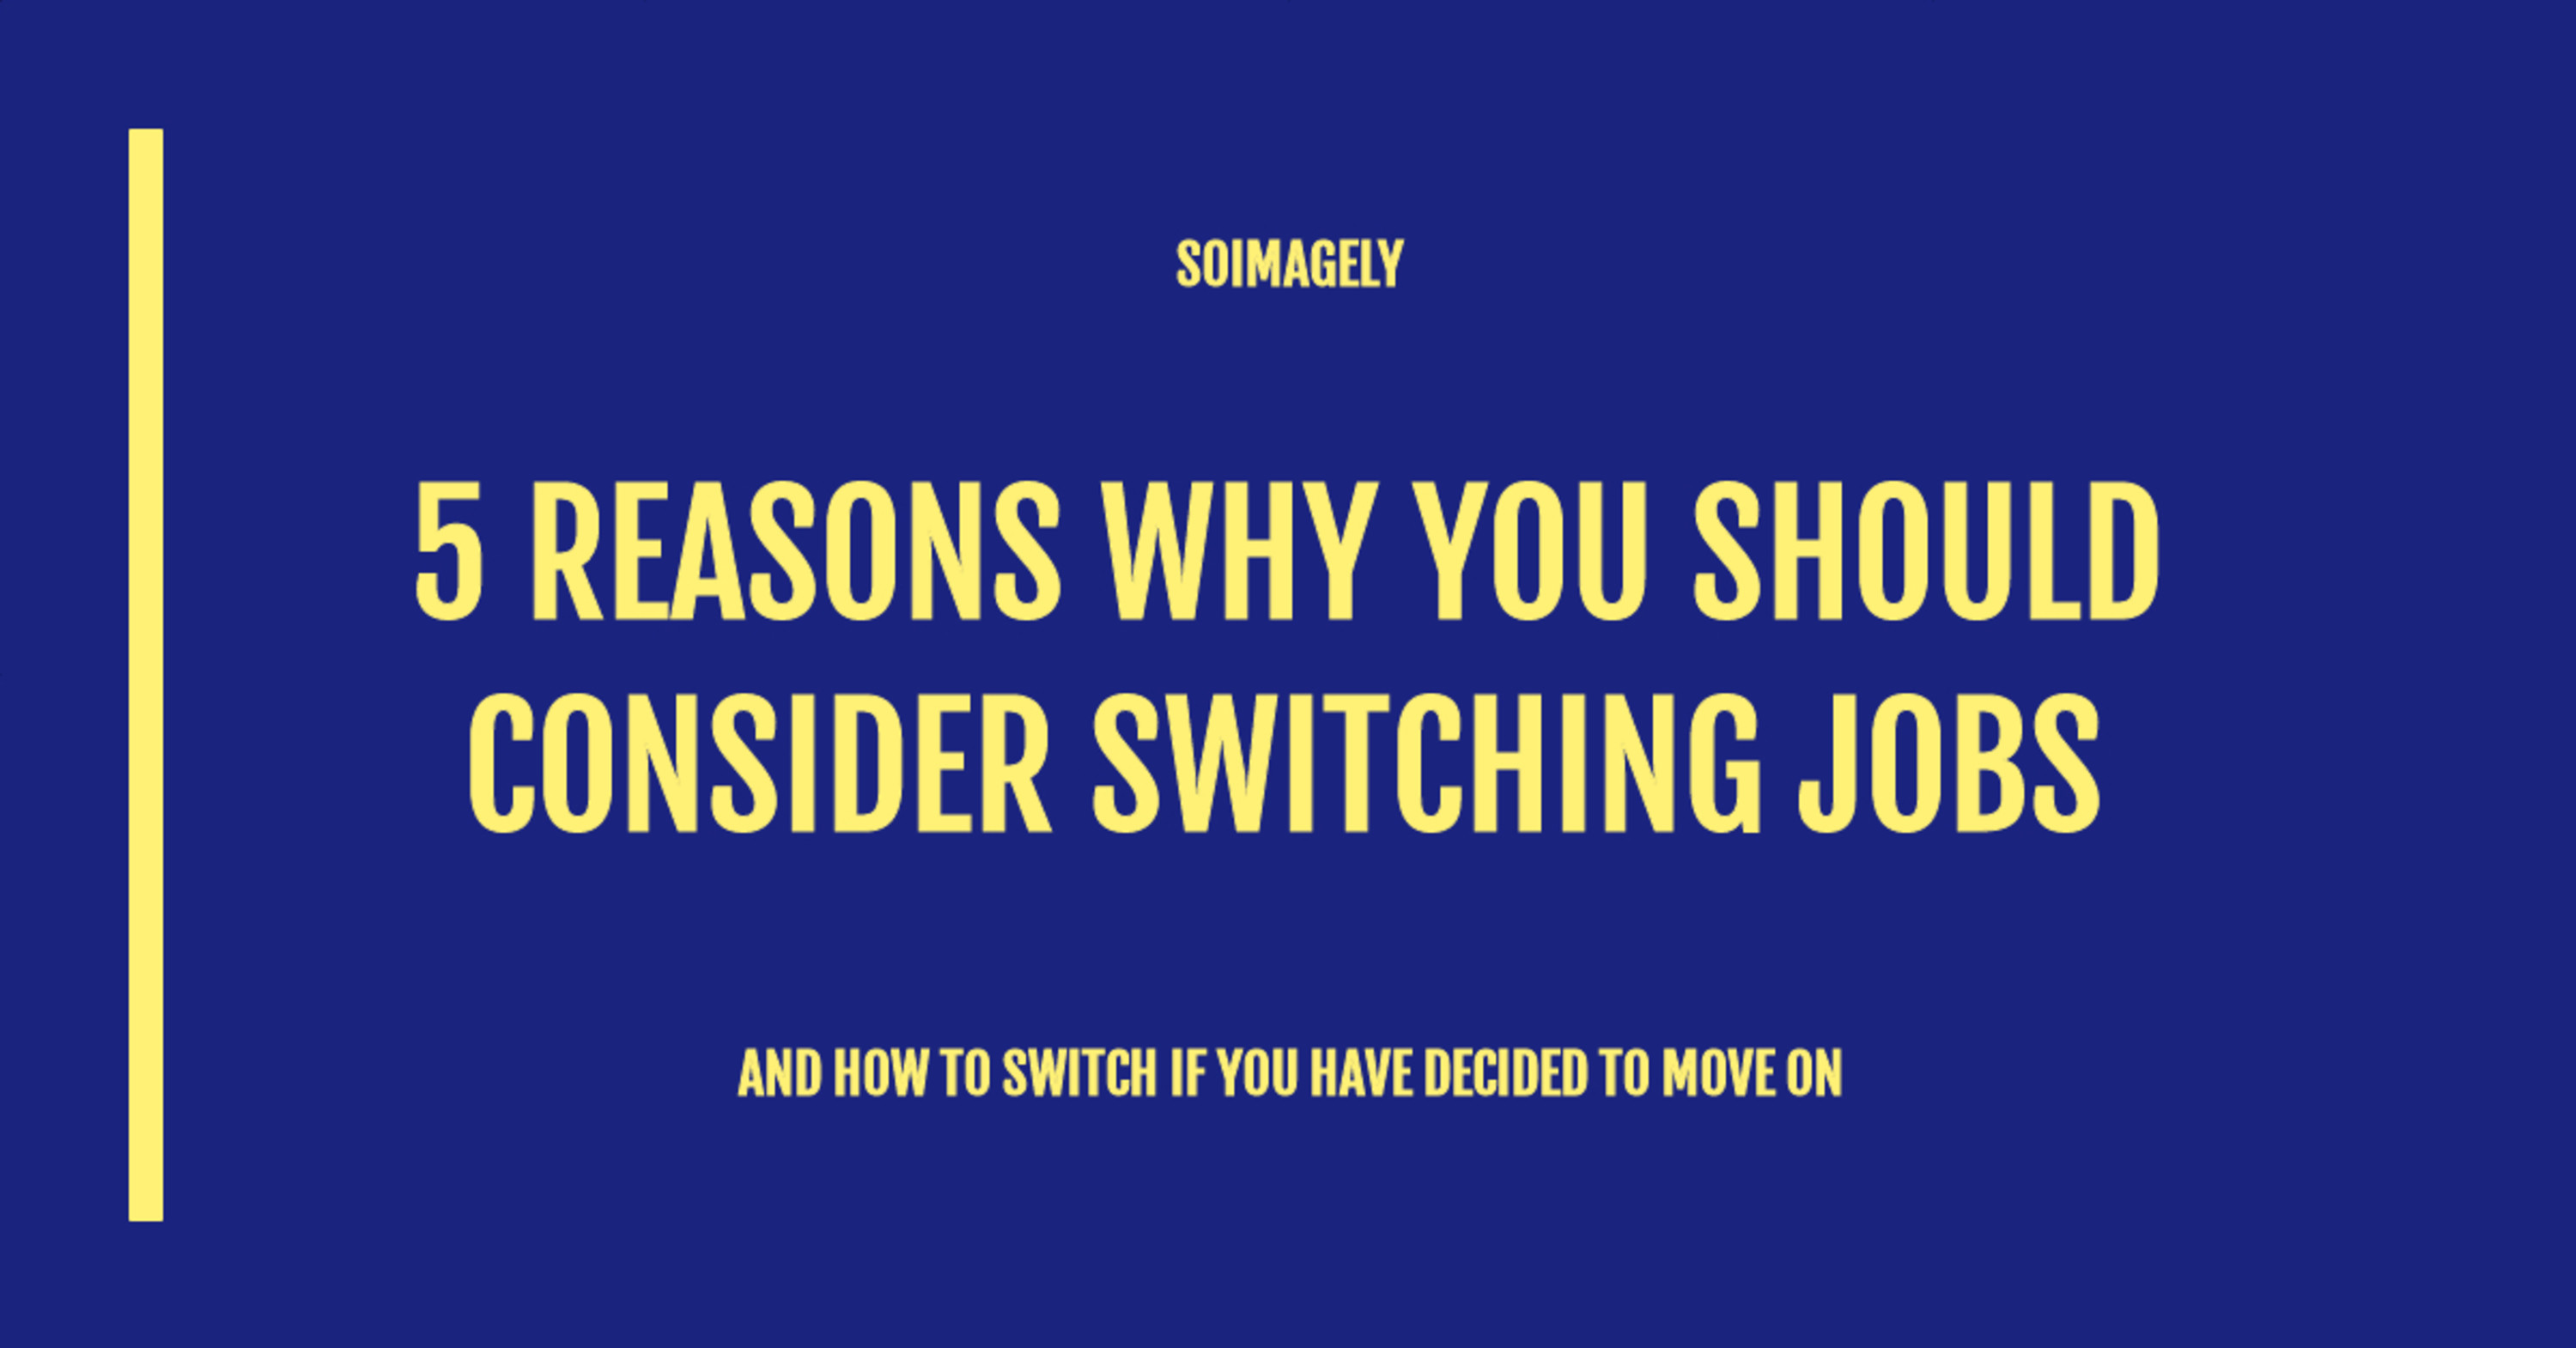 5 reasons why you should consider switching jobs